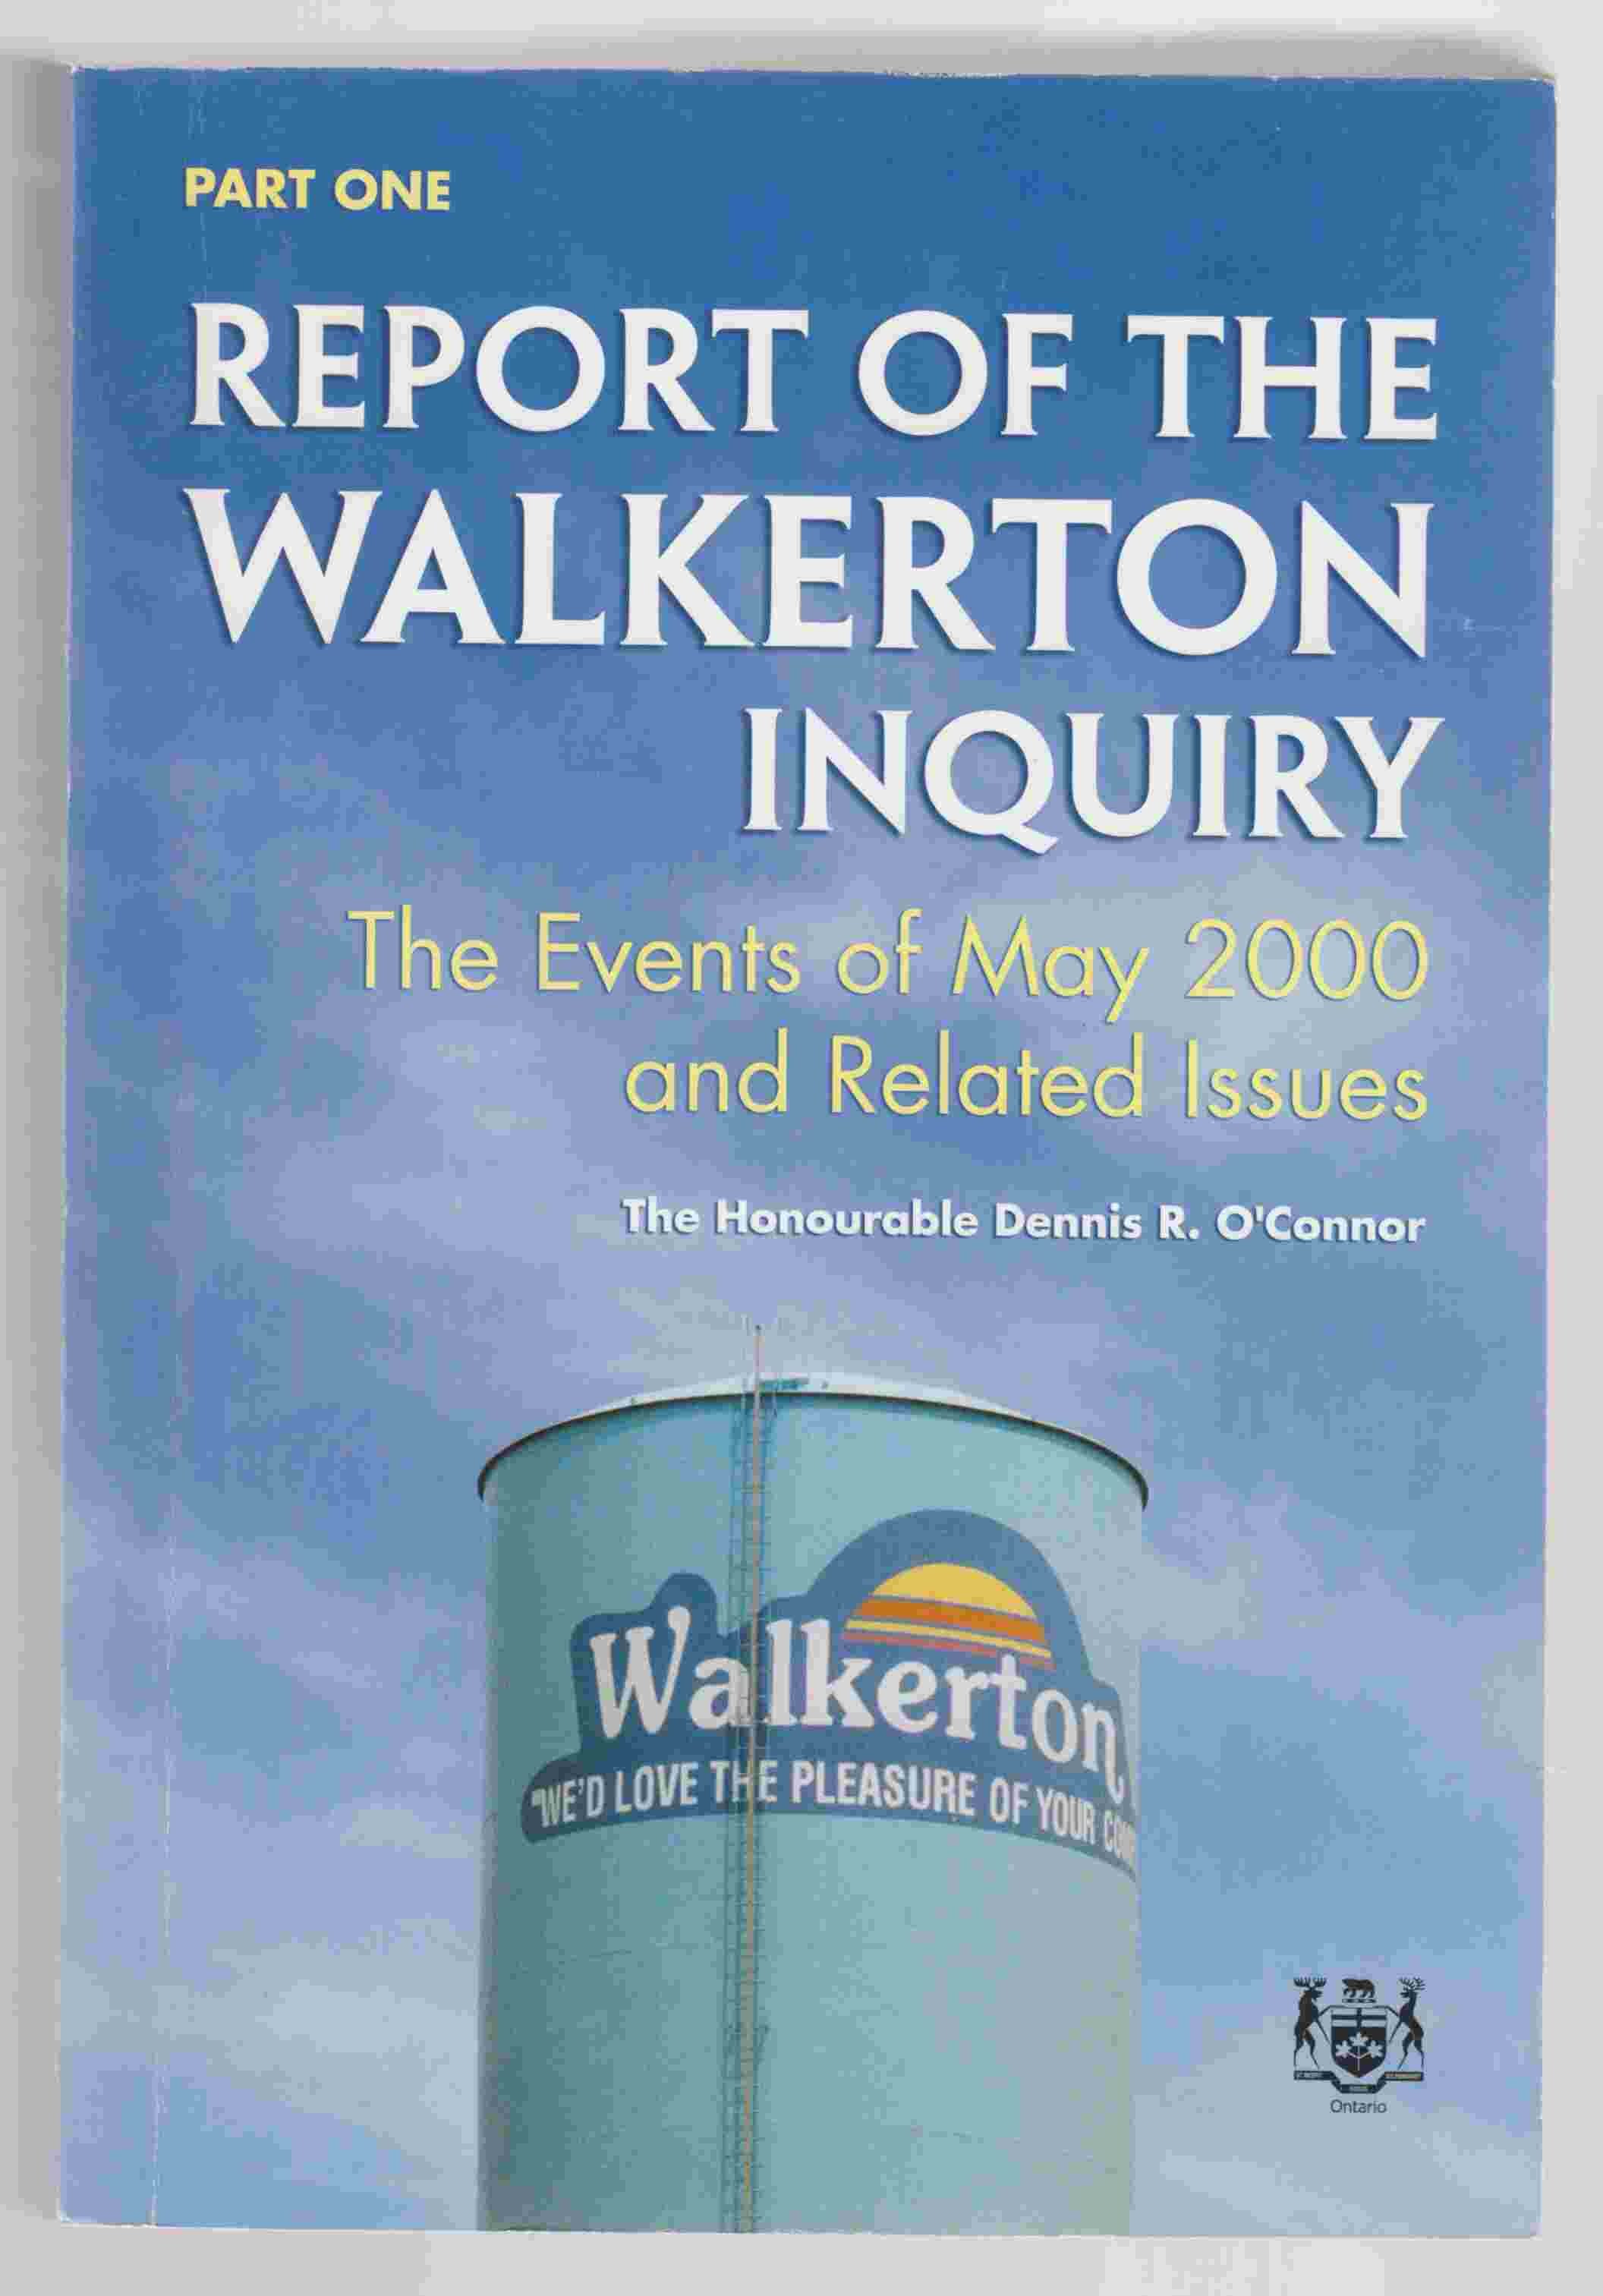 Image for Part One Report of the Walkerton Inquiry The Events of May 2000 and Related Issues